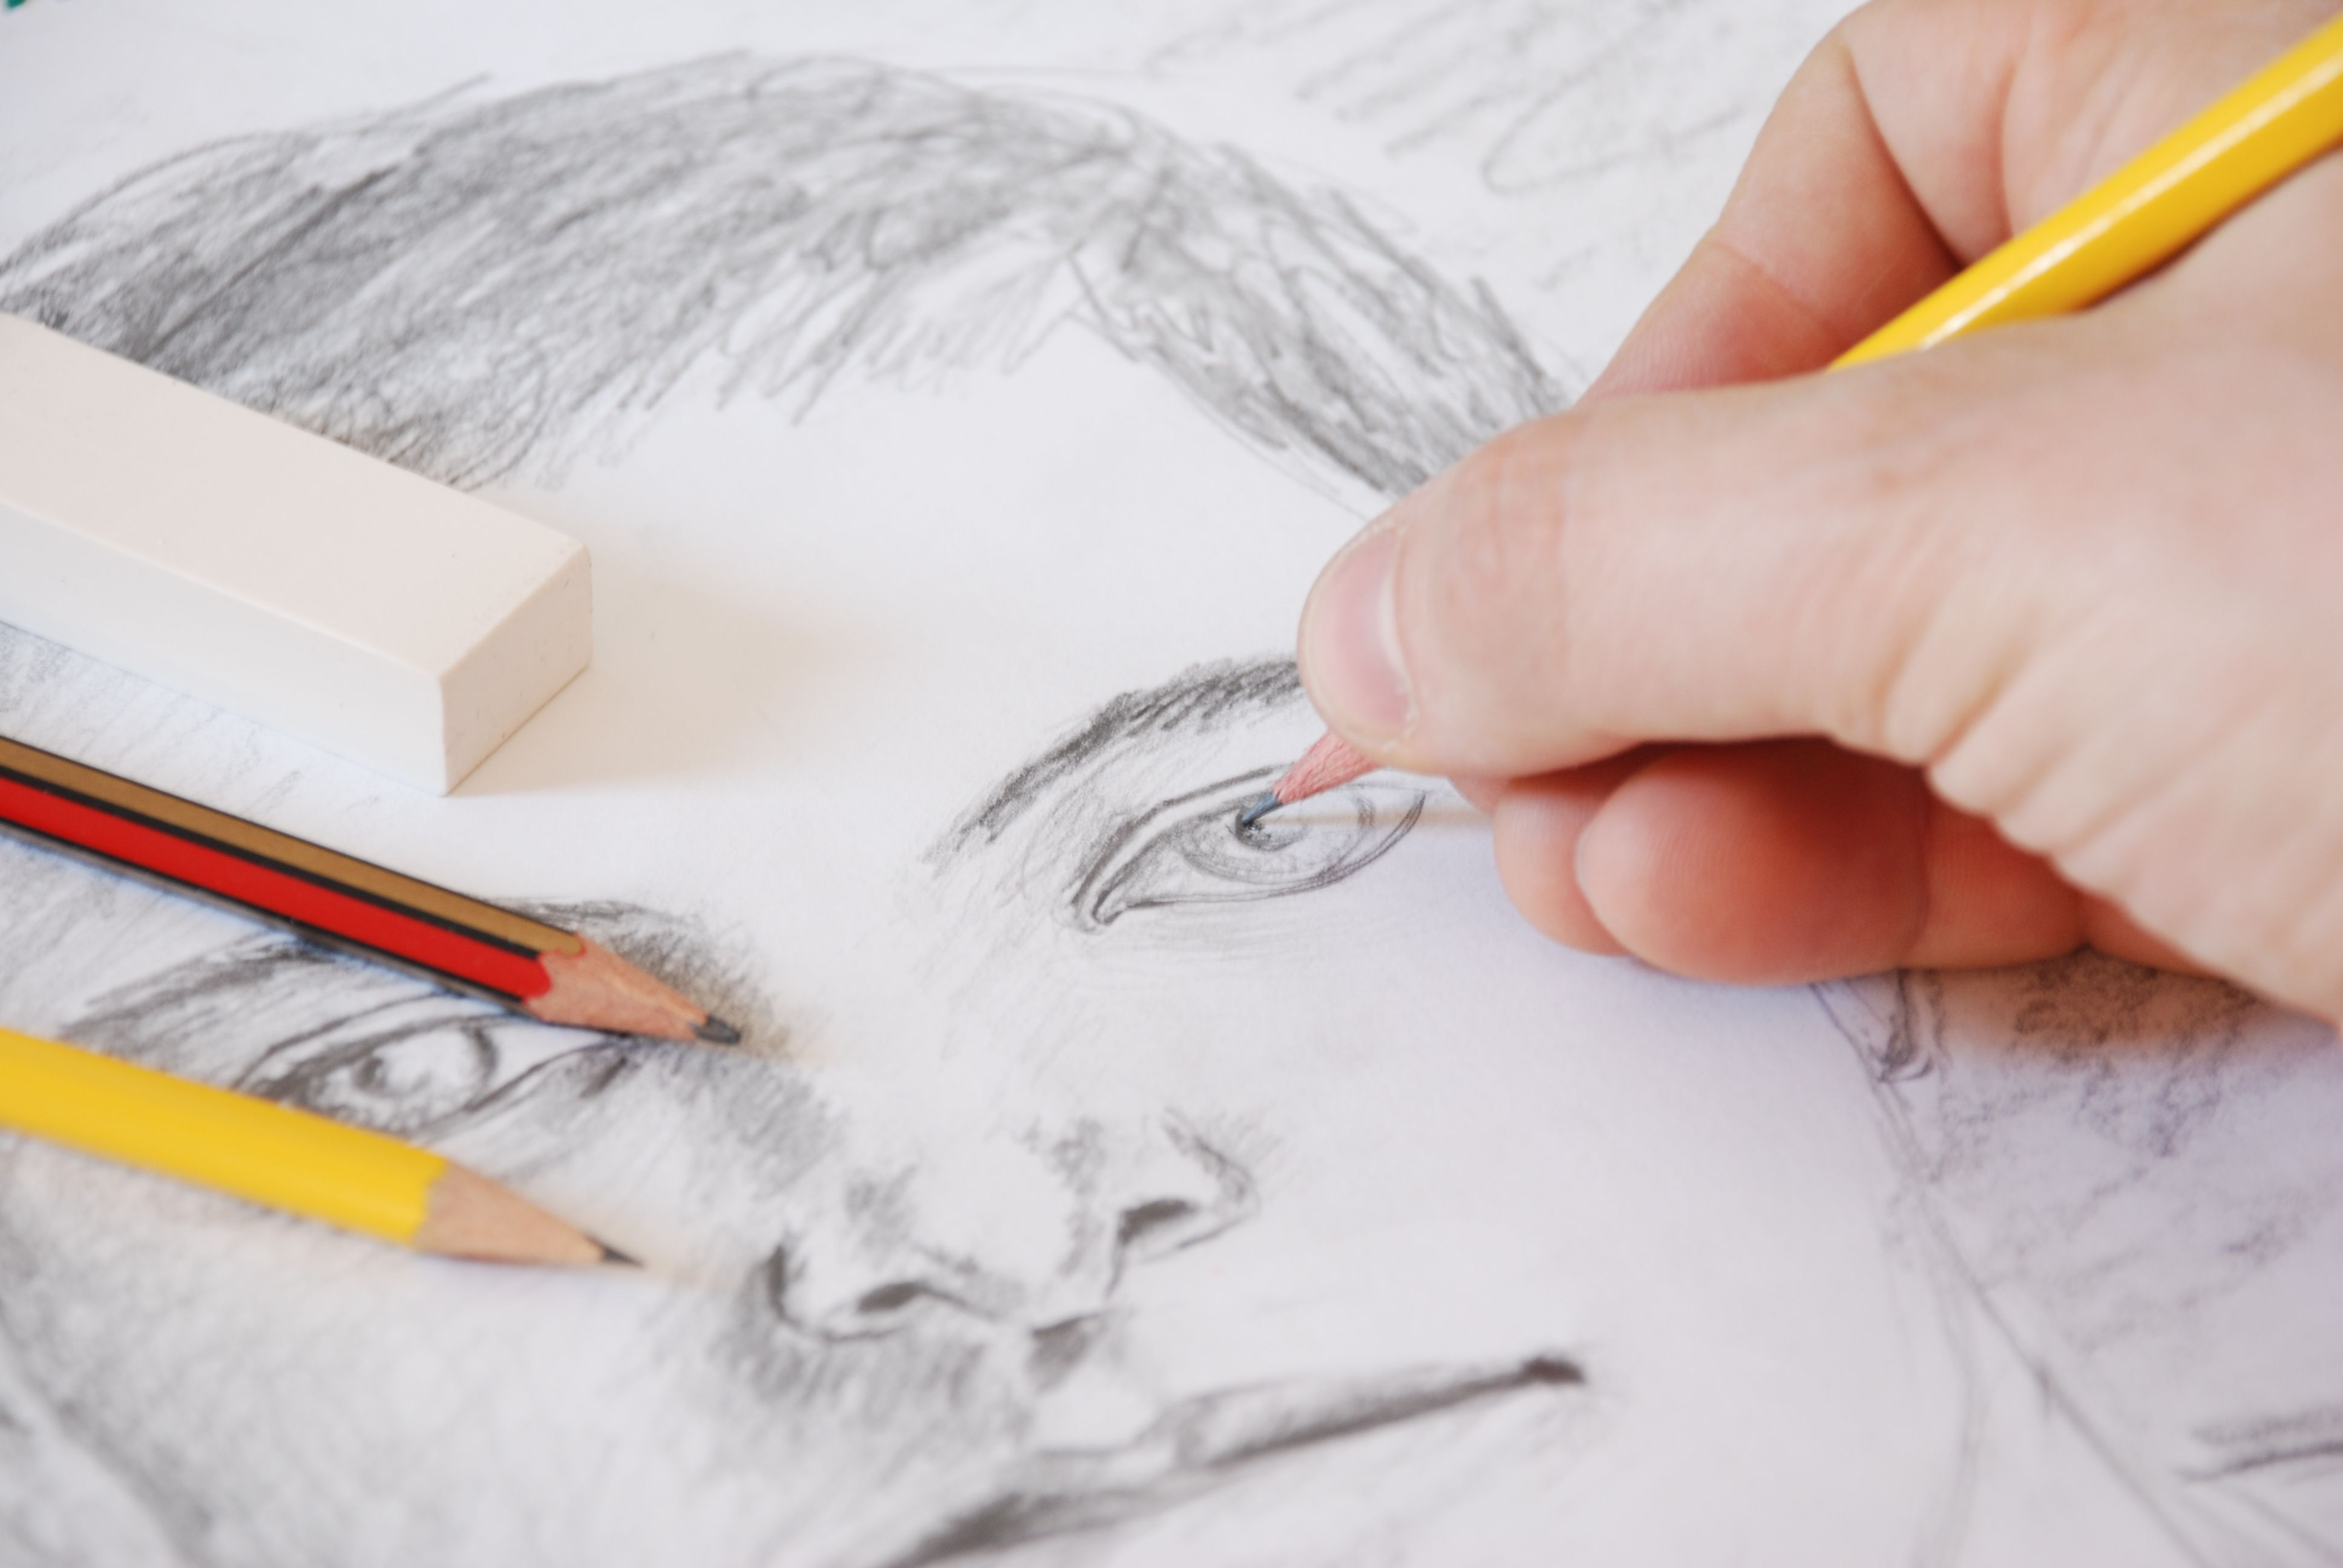 Common drawing errors and how to fix them